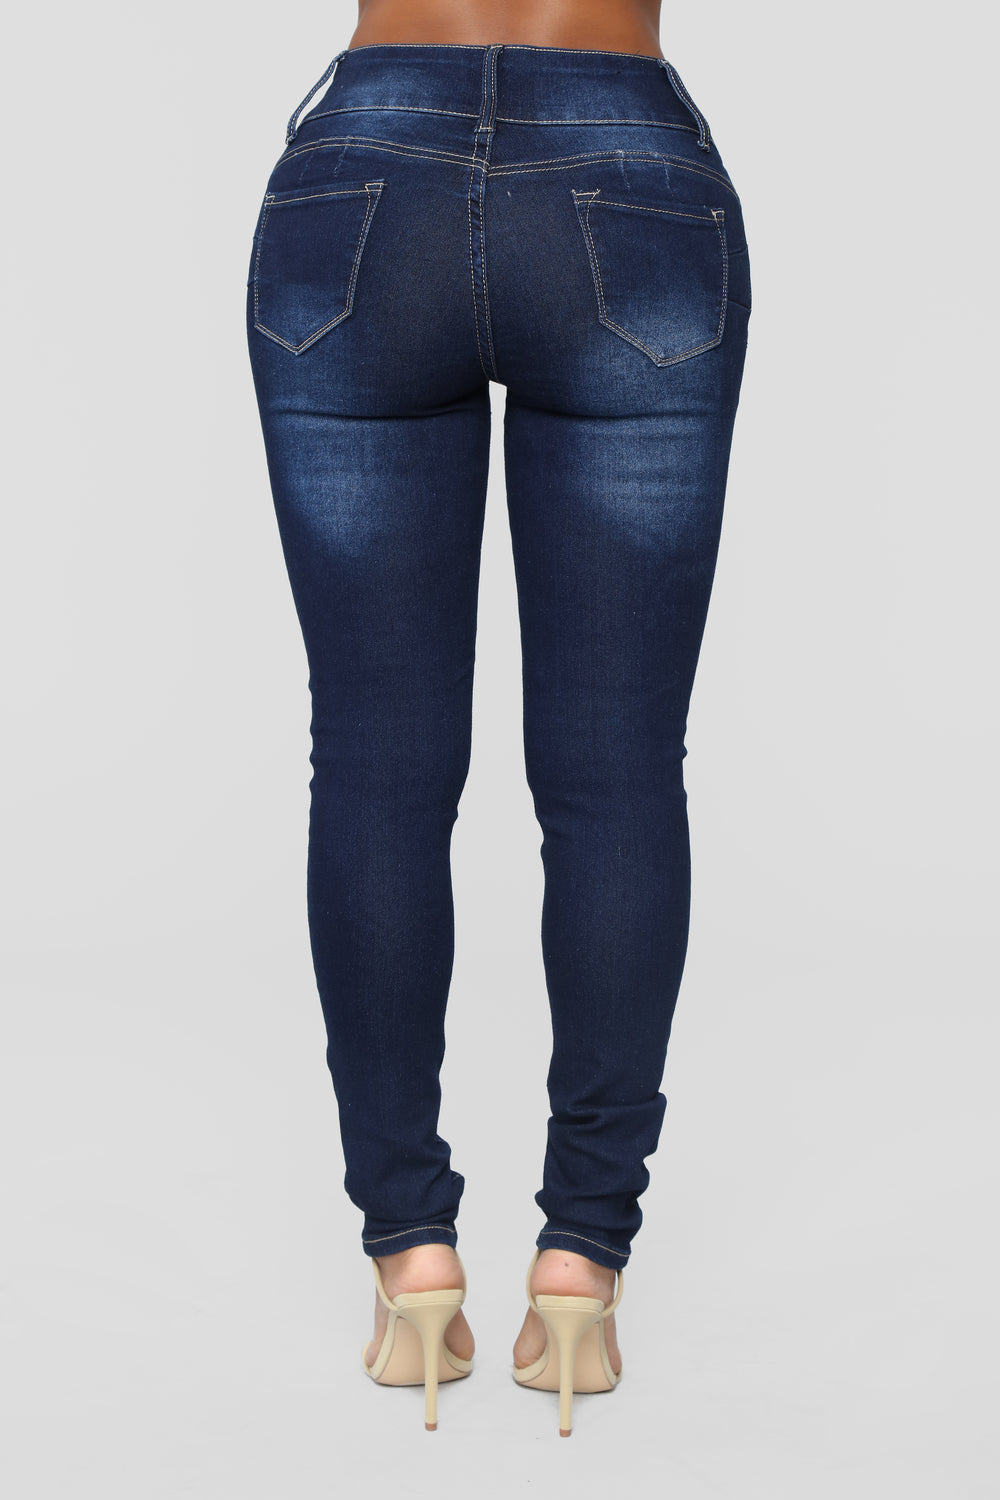 Keeping Secrets Booty Lifting Jeans - Dark Denim